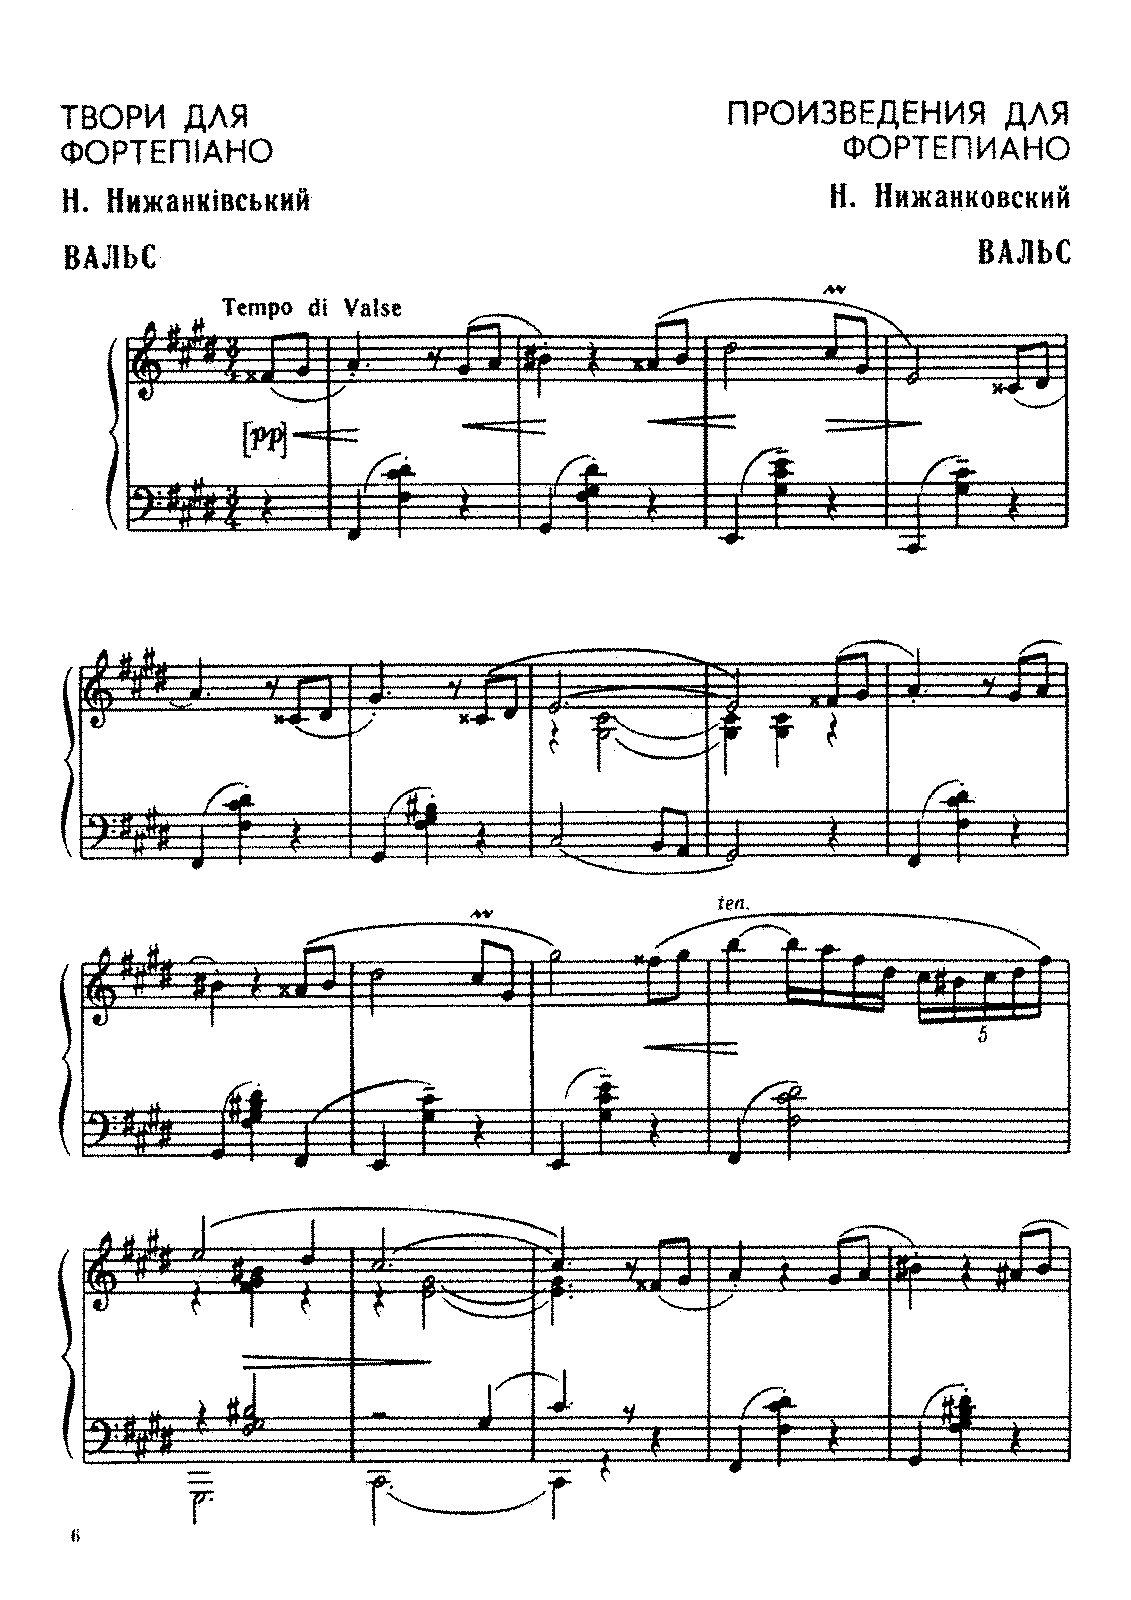 PMLP629910-Nizhankovsky, Nestor - Walz in C sharp minor.pdf